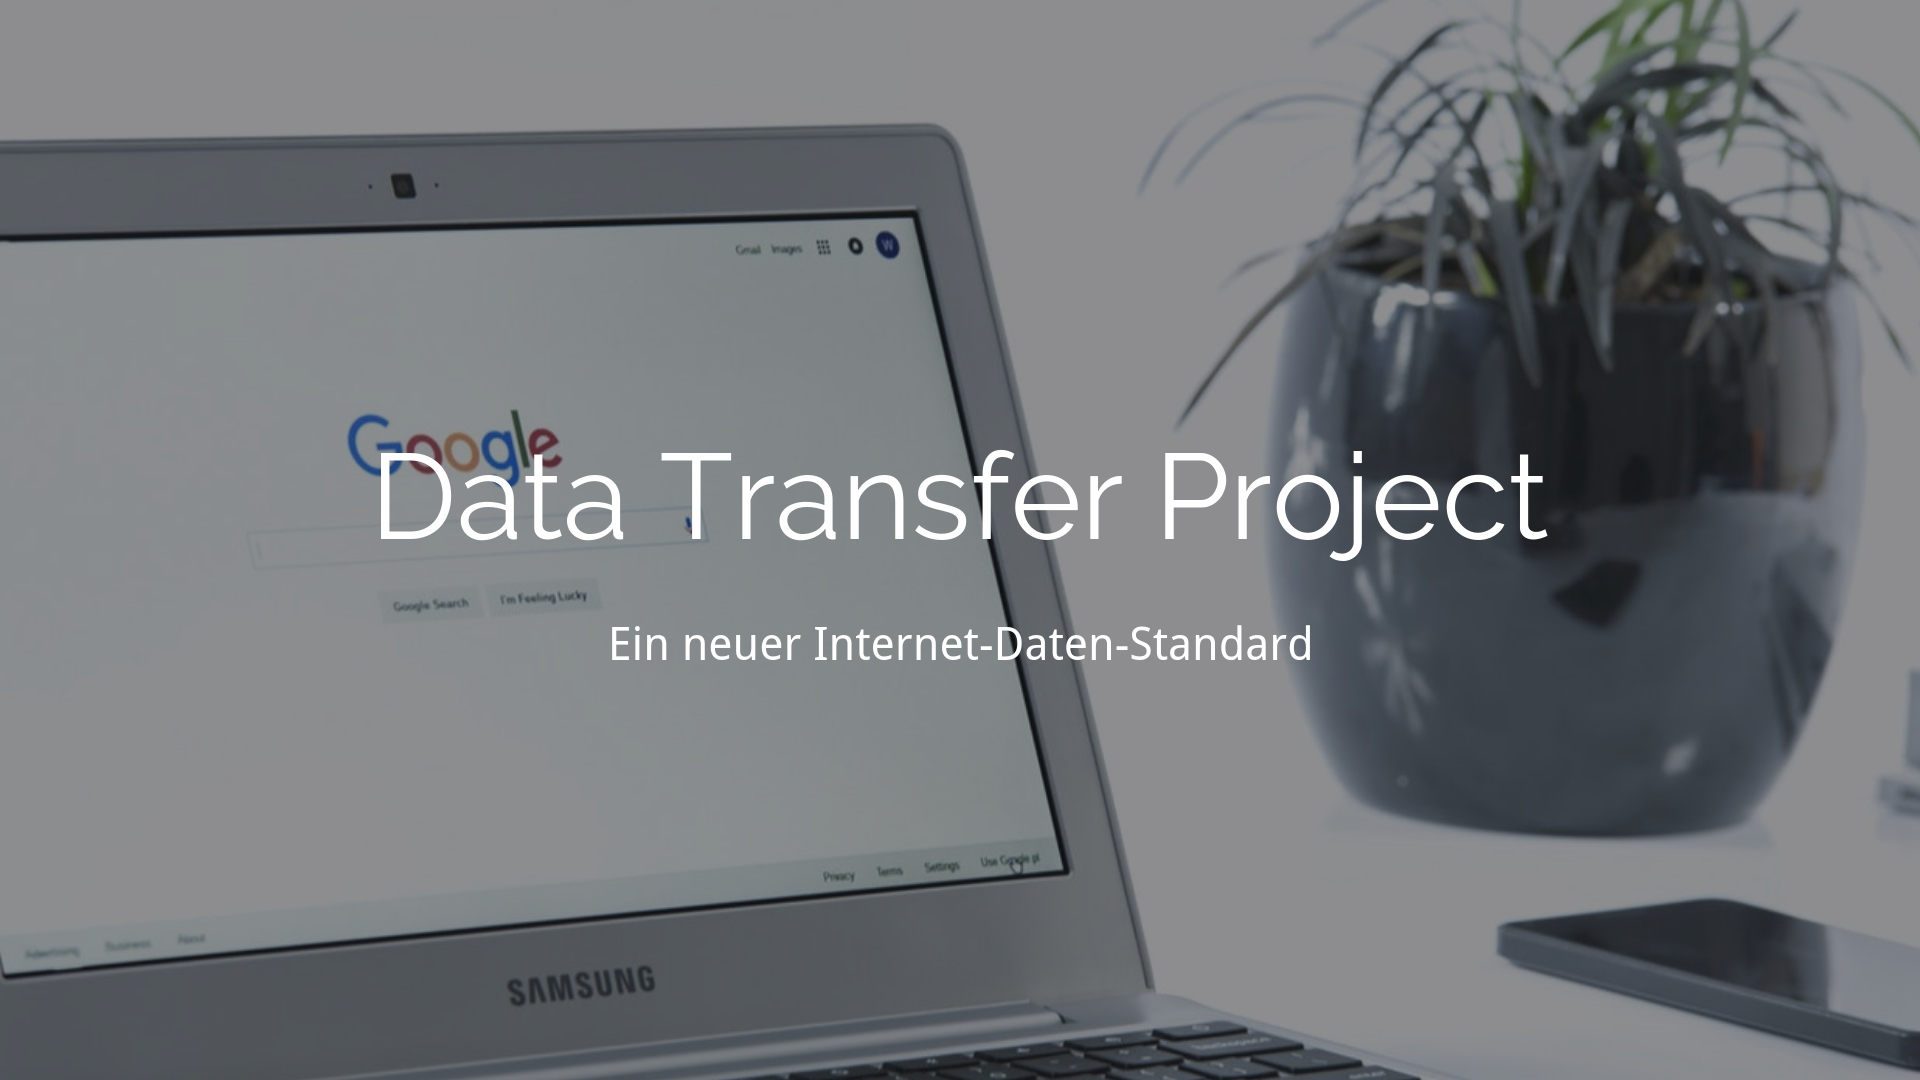 Das Data Transfer Project